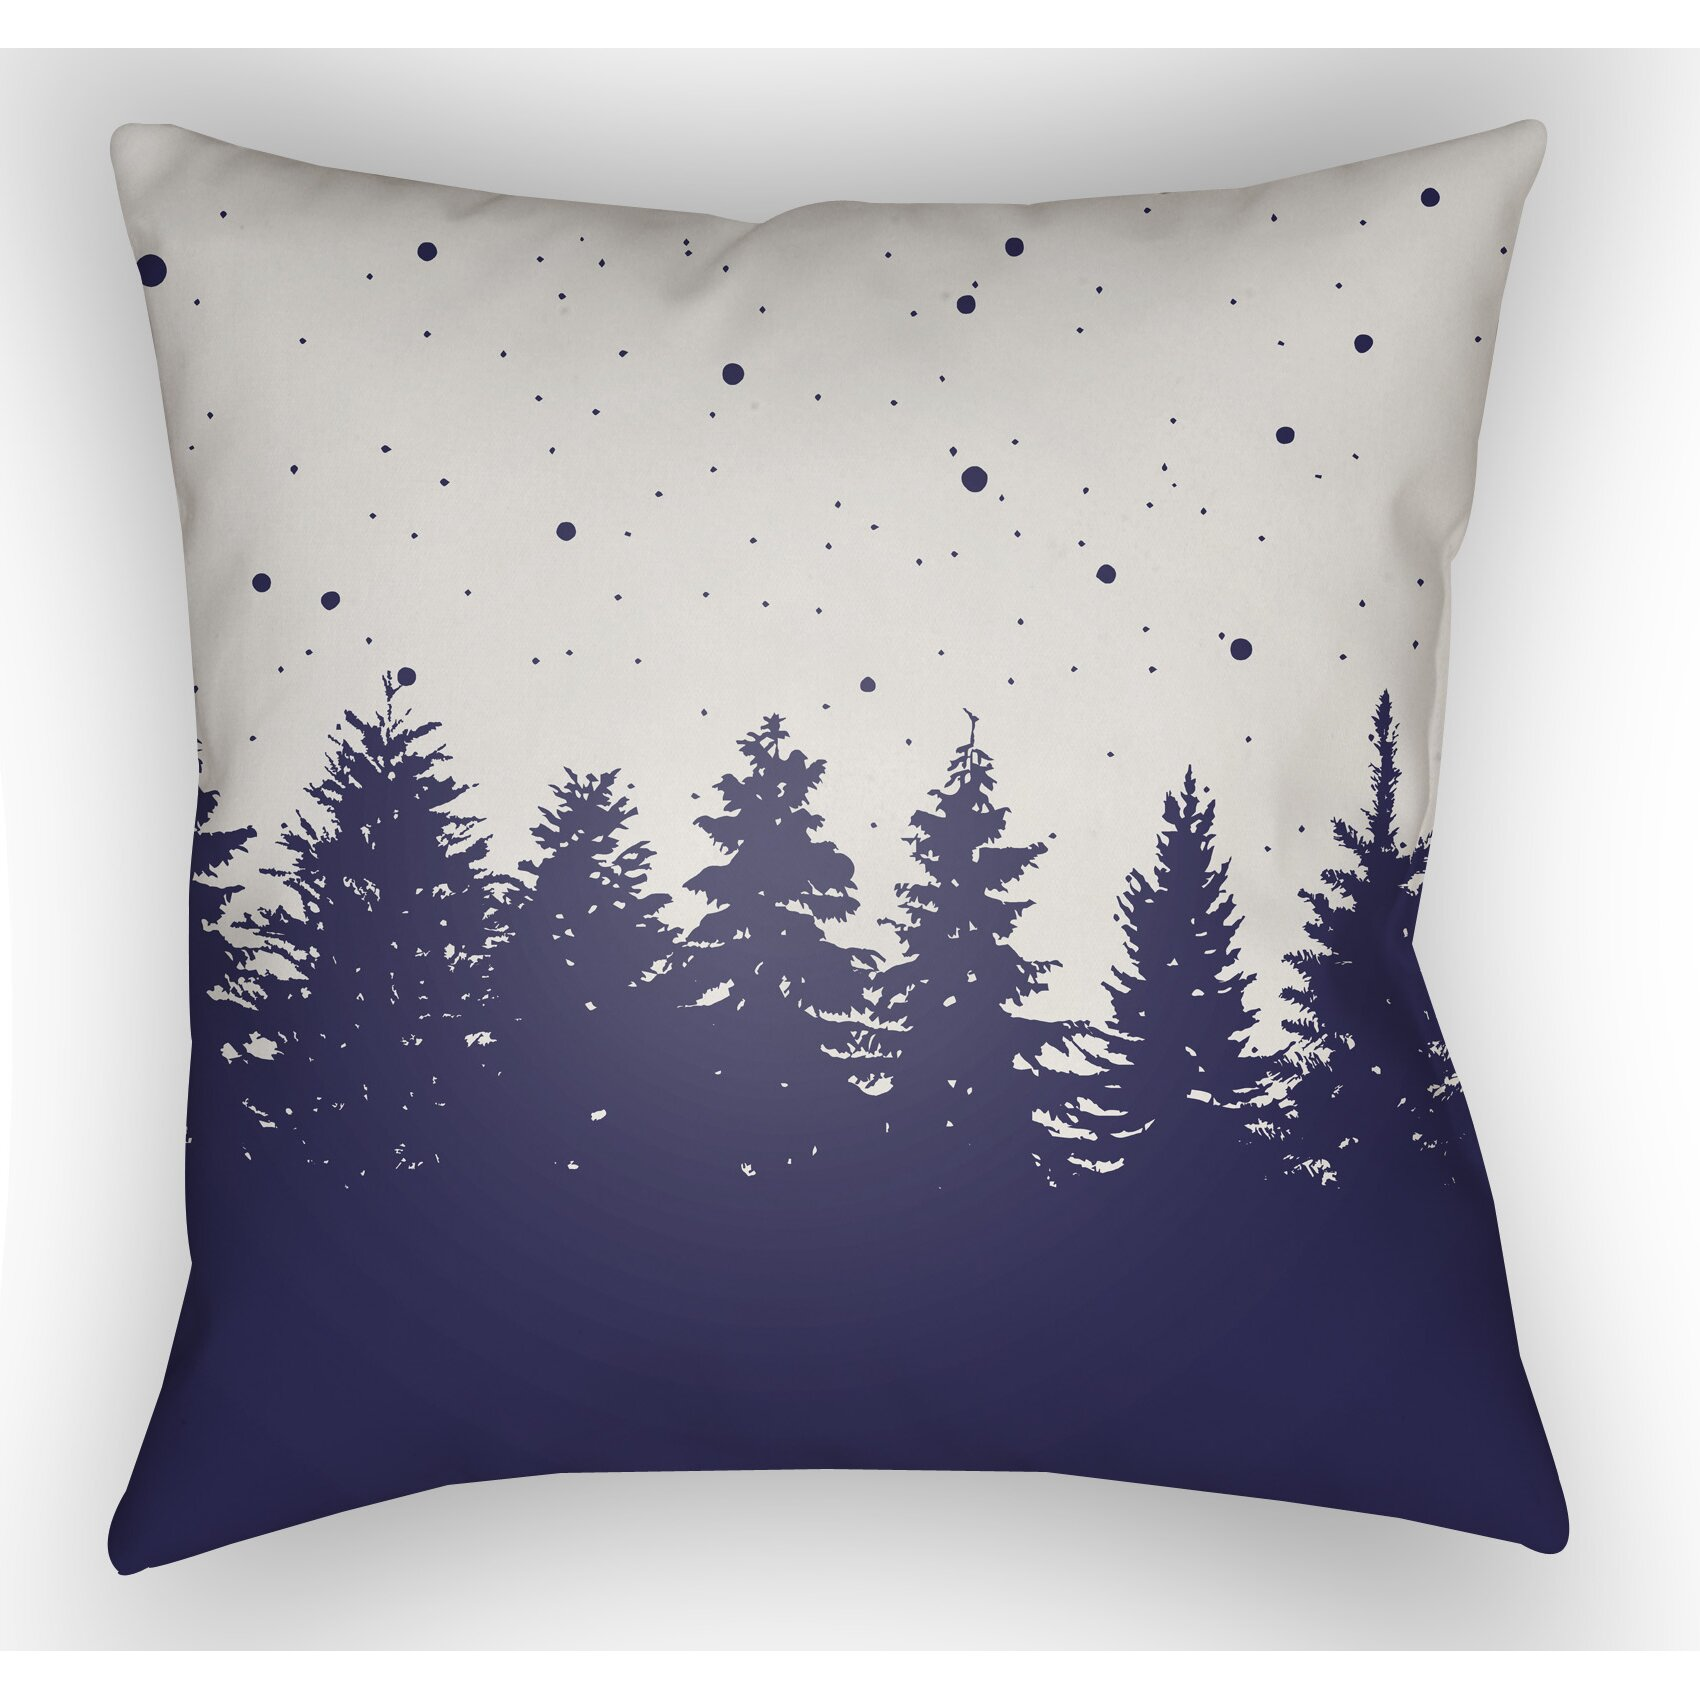 Throw Pillows In Abuja : Loon Peak Frissell Trees Indoor/Outdoor Throw Pillow & Reviews Wayfair